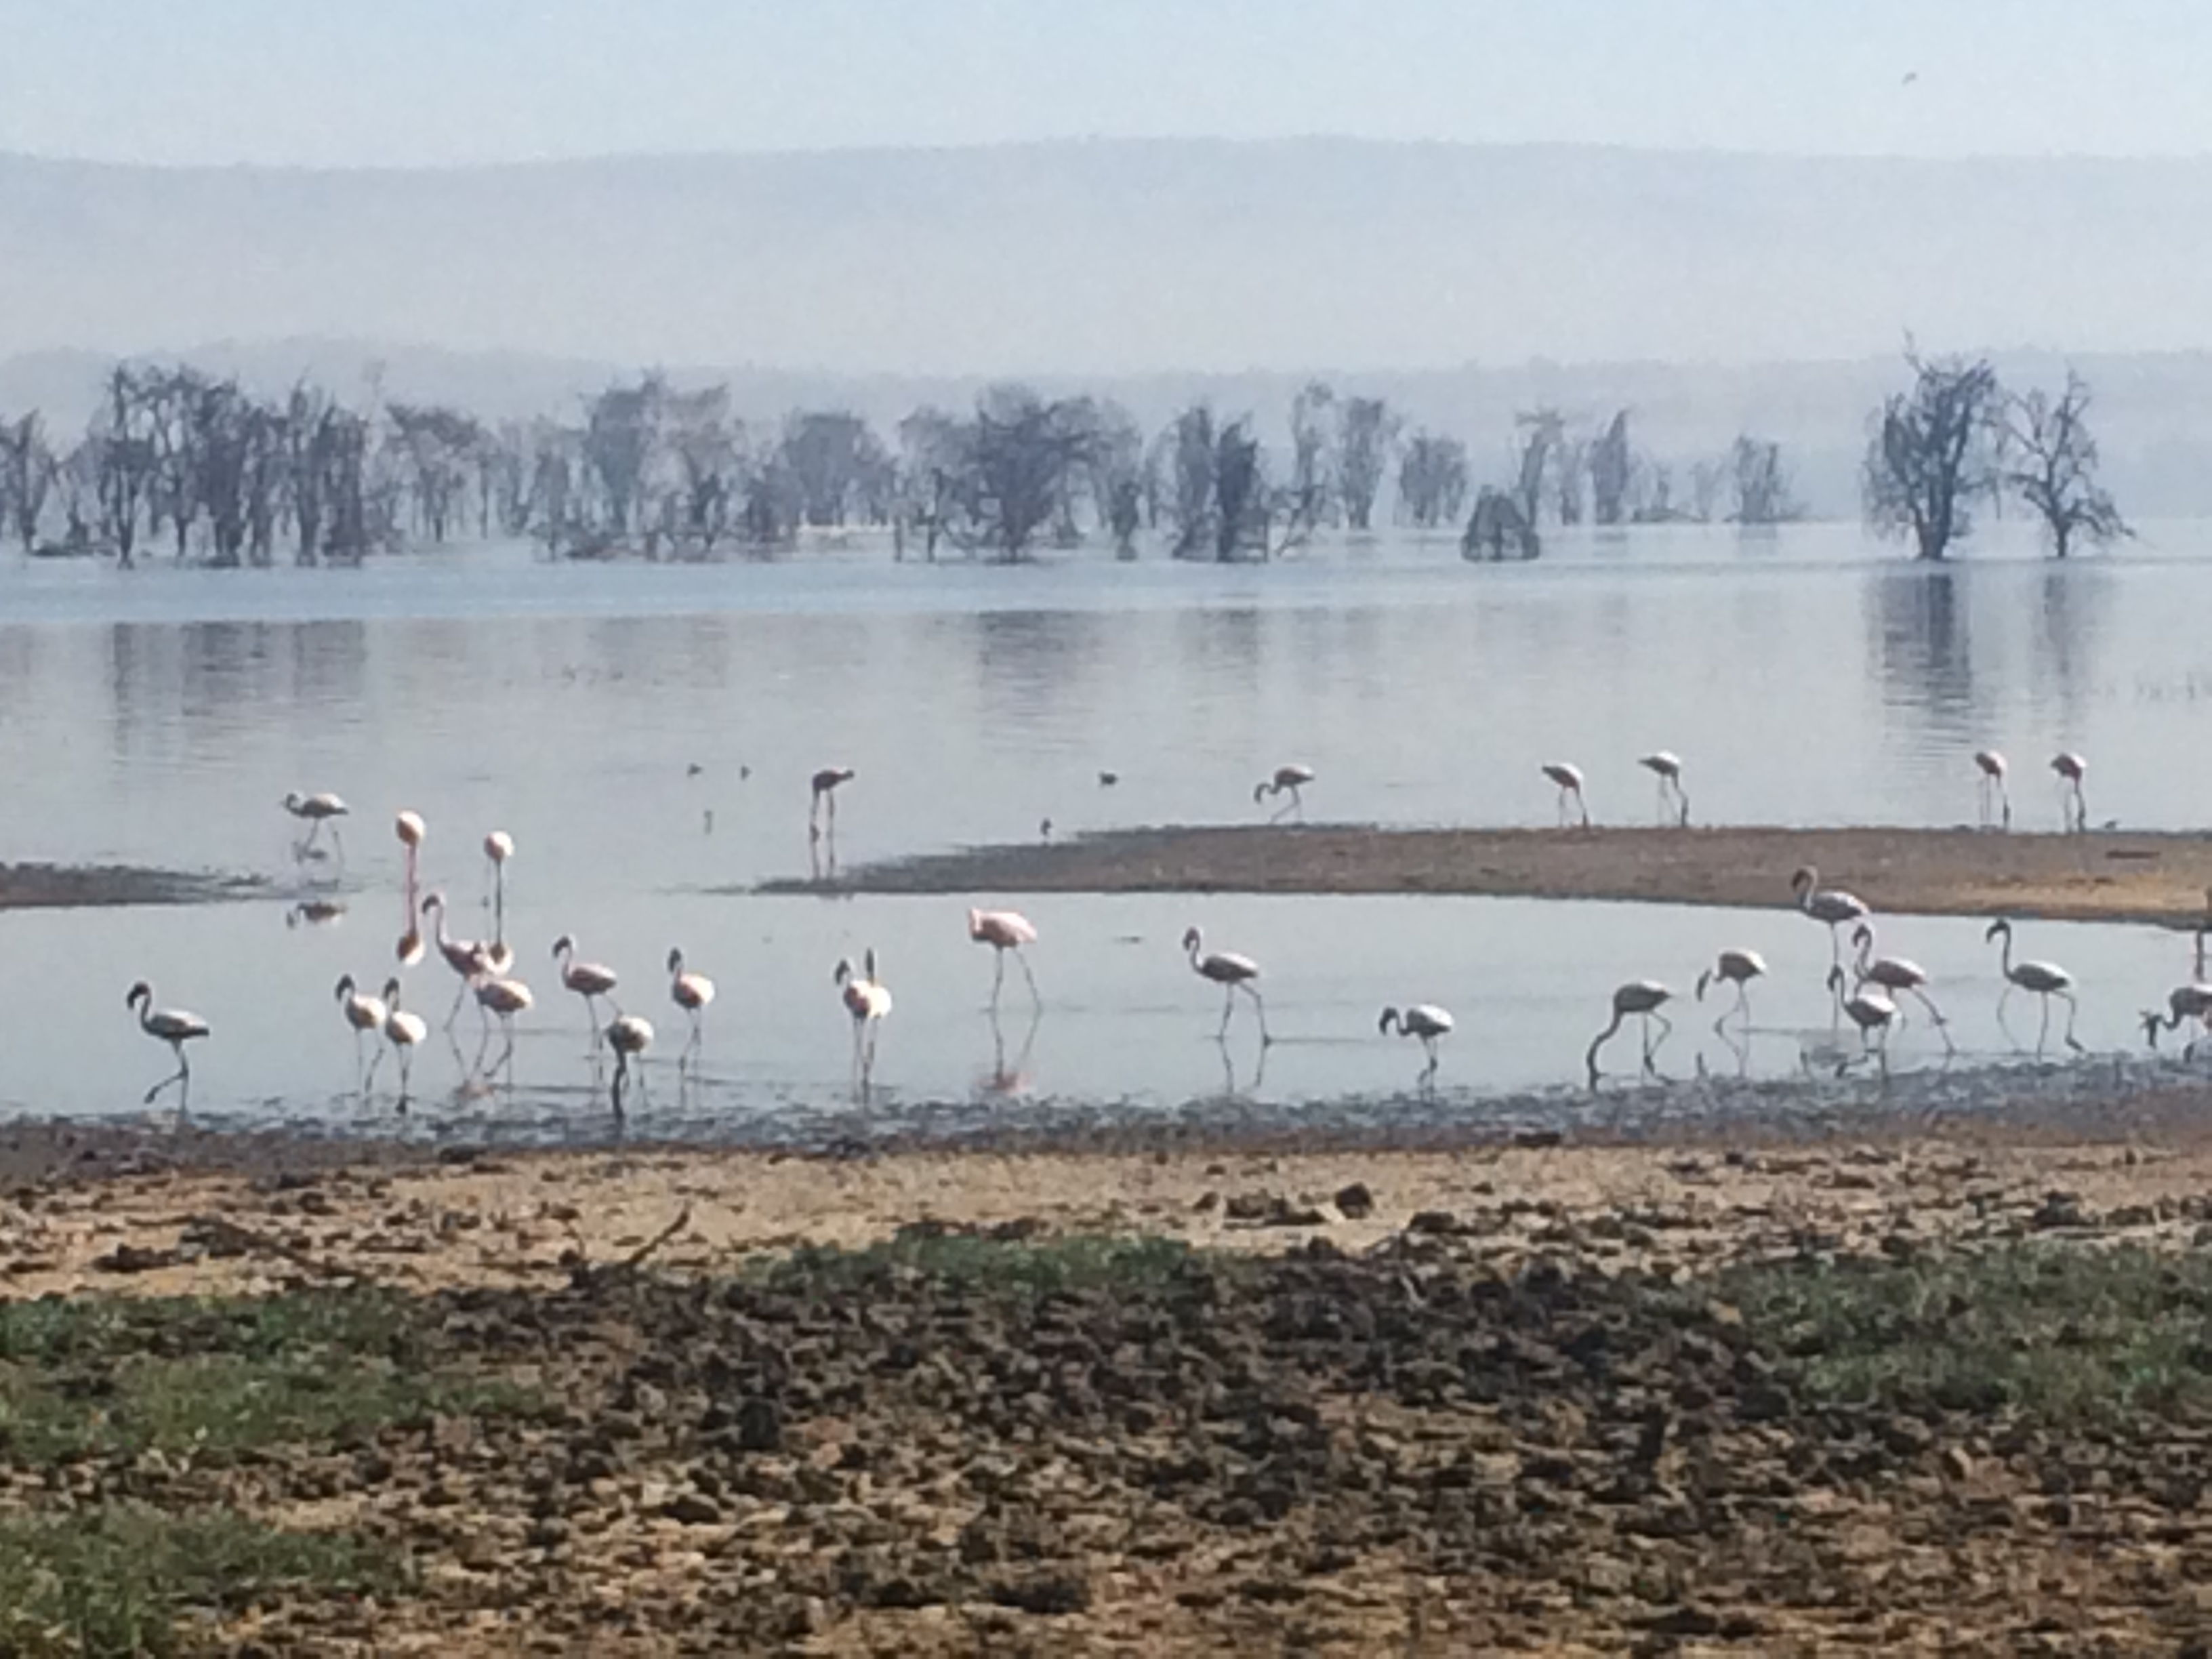 Flamingoes at Lake Nakuru National Park, Kenya, Africa